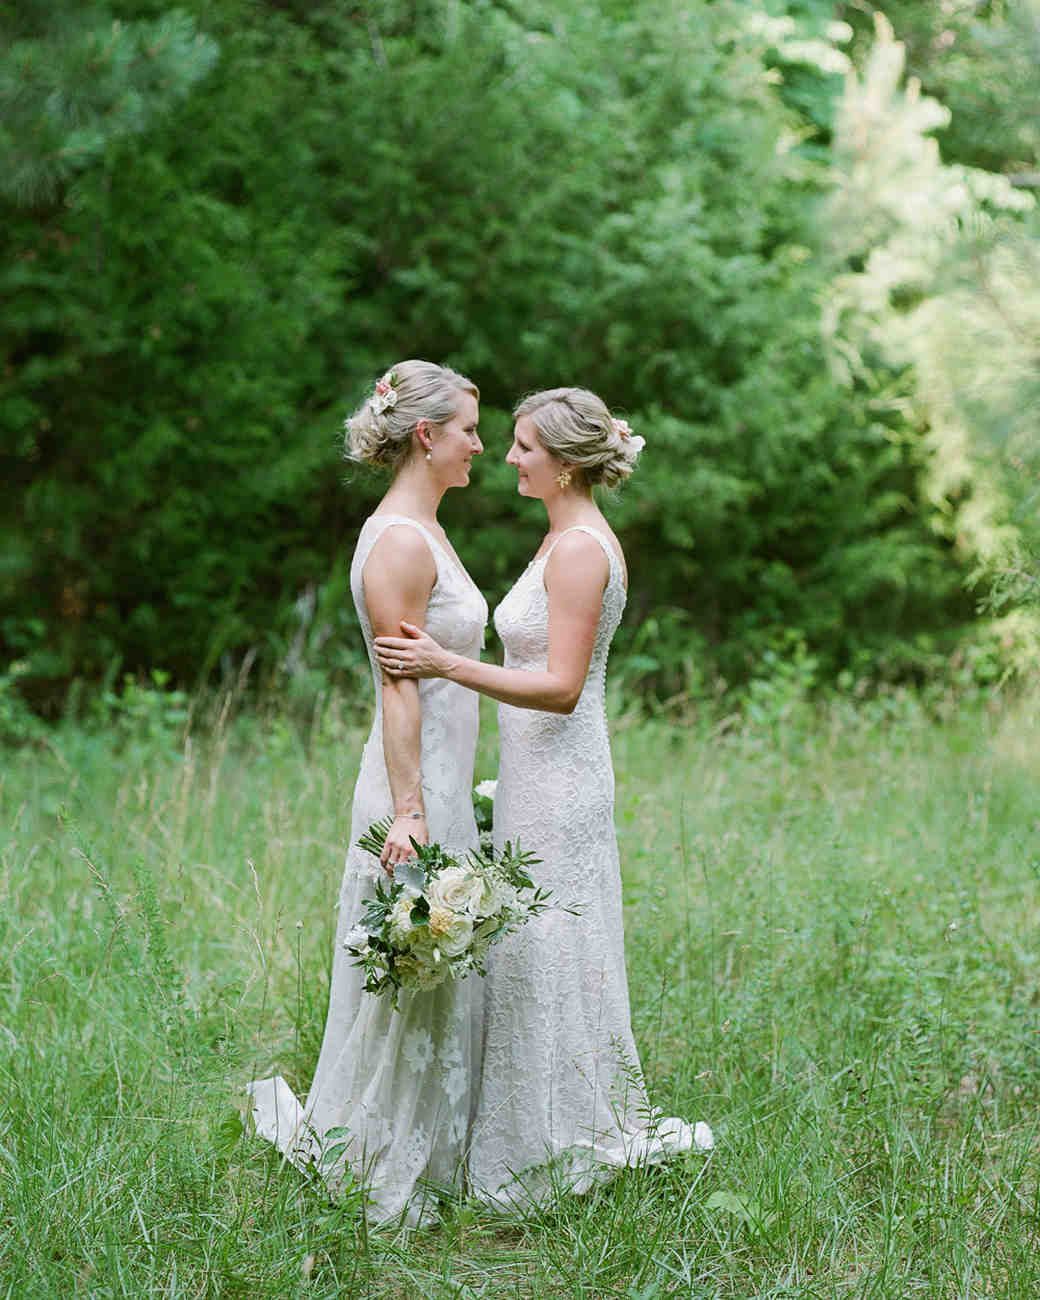 paige and kristine wedding brides embracing in field